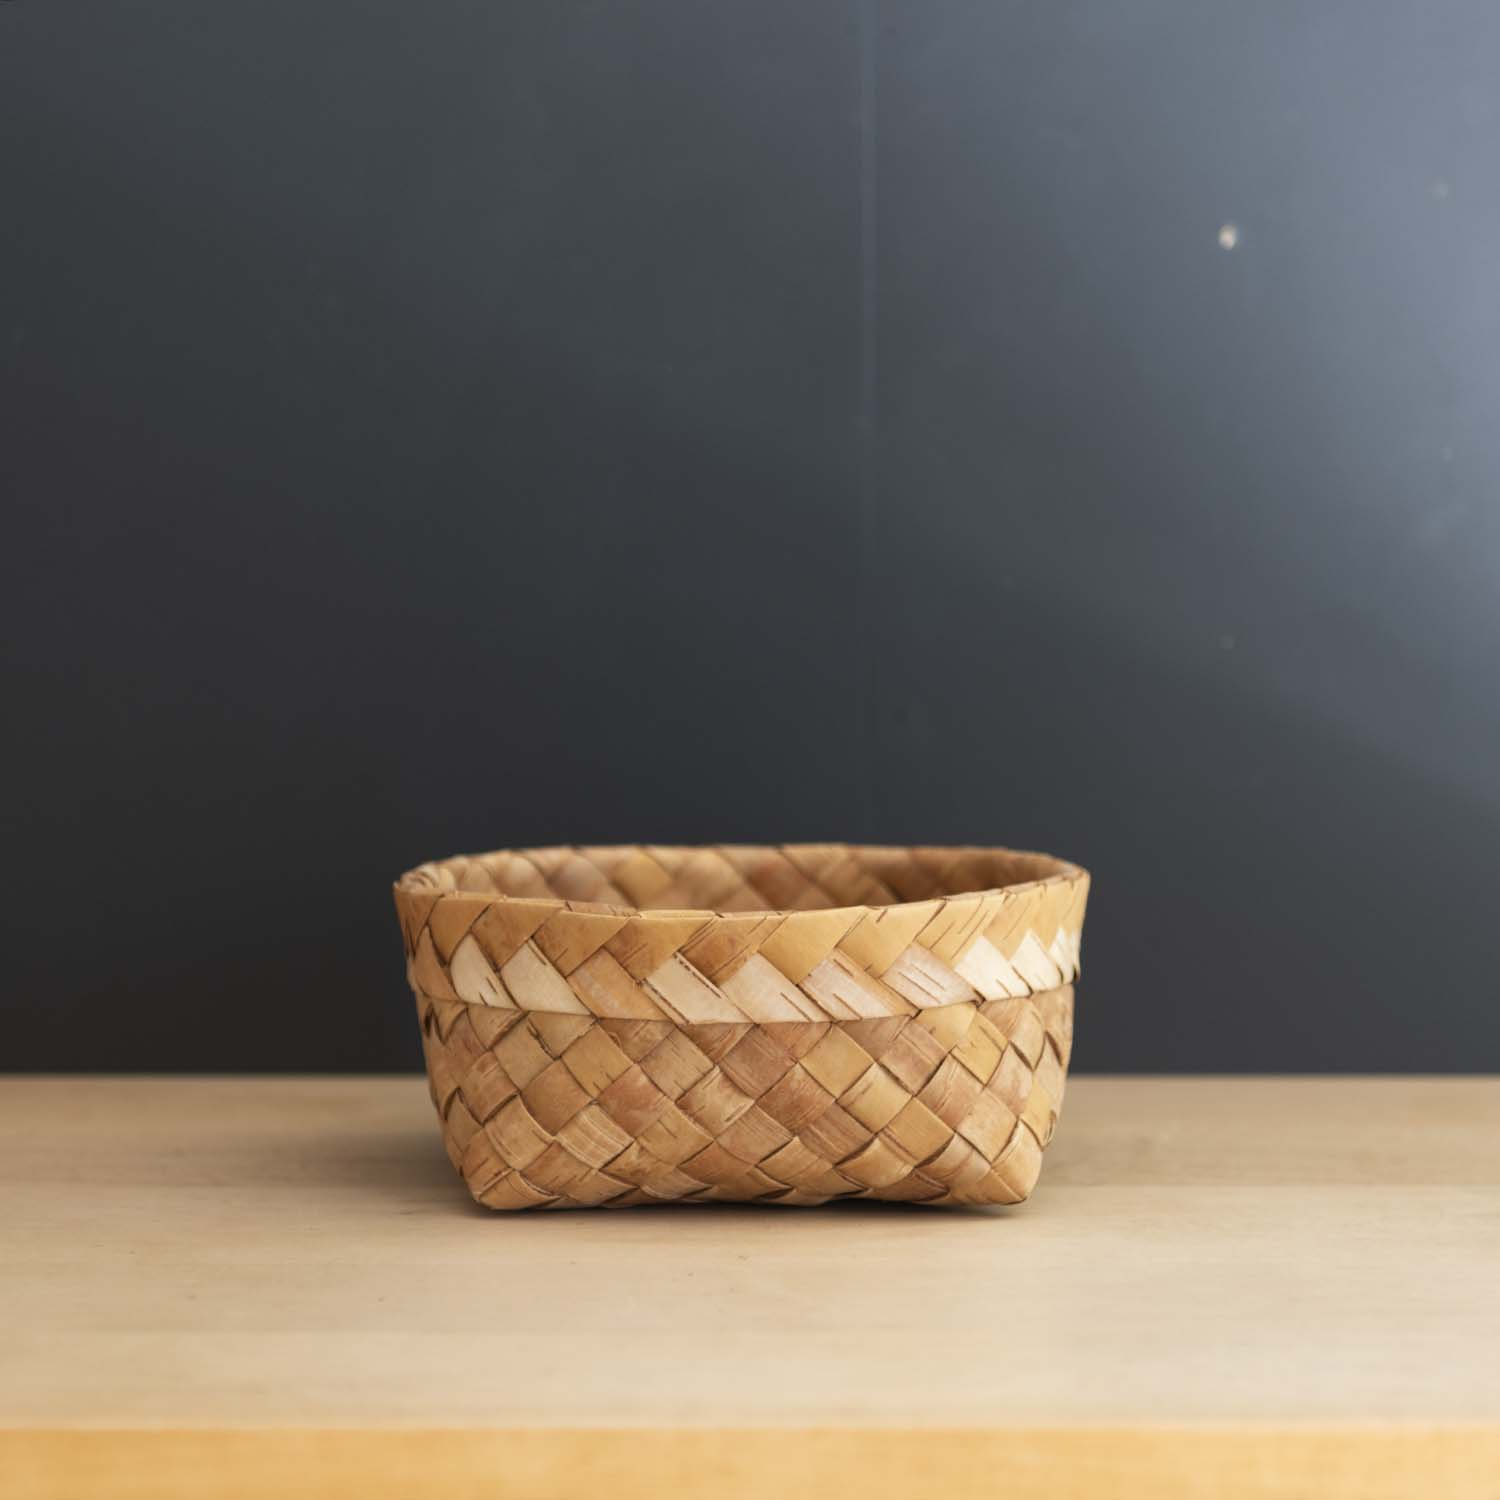 <img class='new_mark_img1' src='https://img.shop-pro.jp/img/new/icons3.gif' style='border:none;display:inline;margin:0px;padding:0px;width:auto;' />Birch Bark Handwoven Basket Large